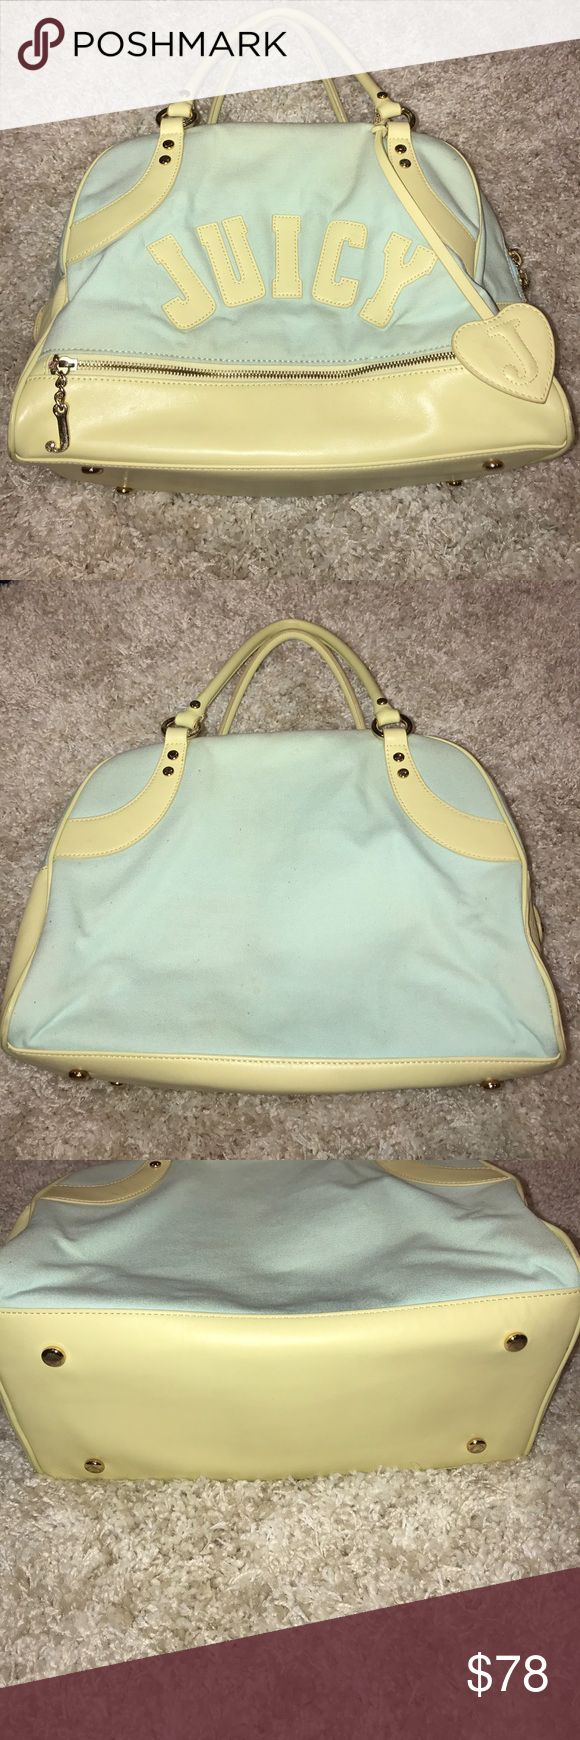 •Juicy Couture• Travel Tote Condition shown in pictures. Small rust marks. Edition prior to Kohl's. Juicy Couture Bags Travel Bags